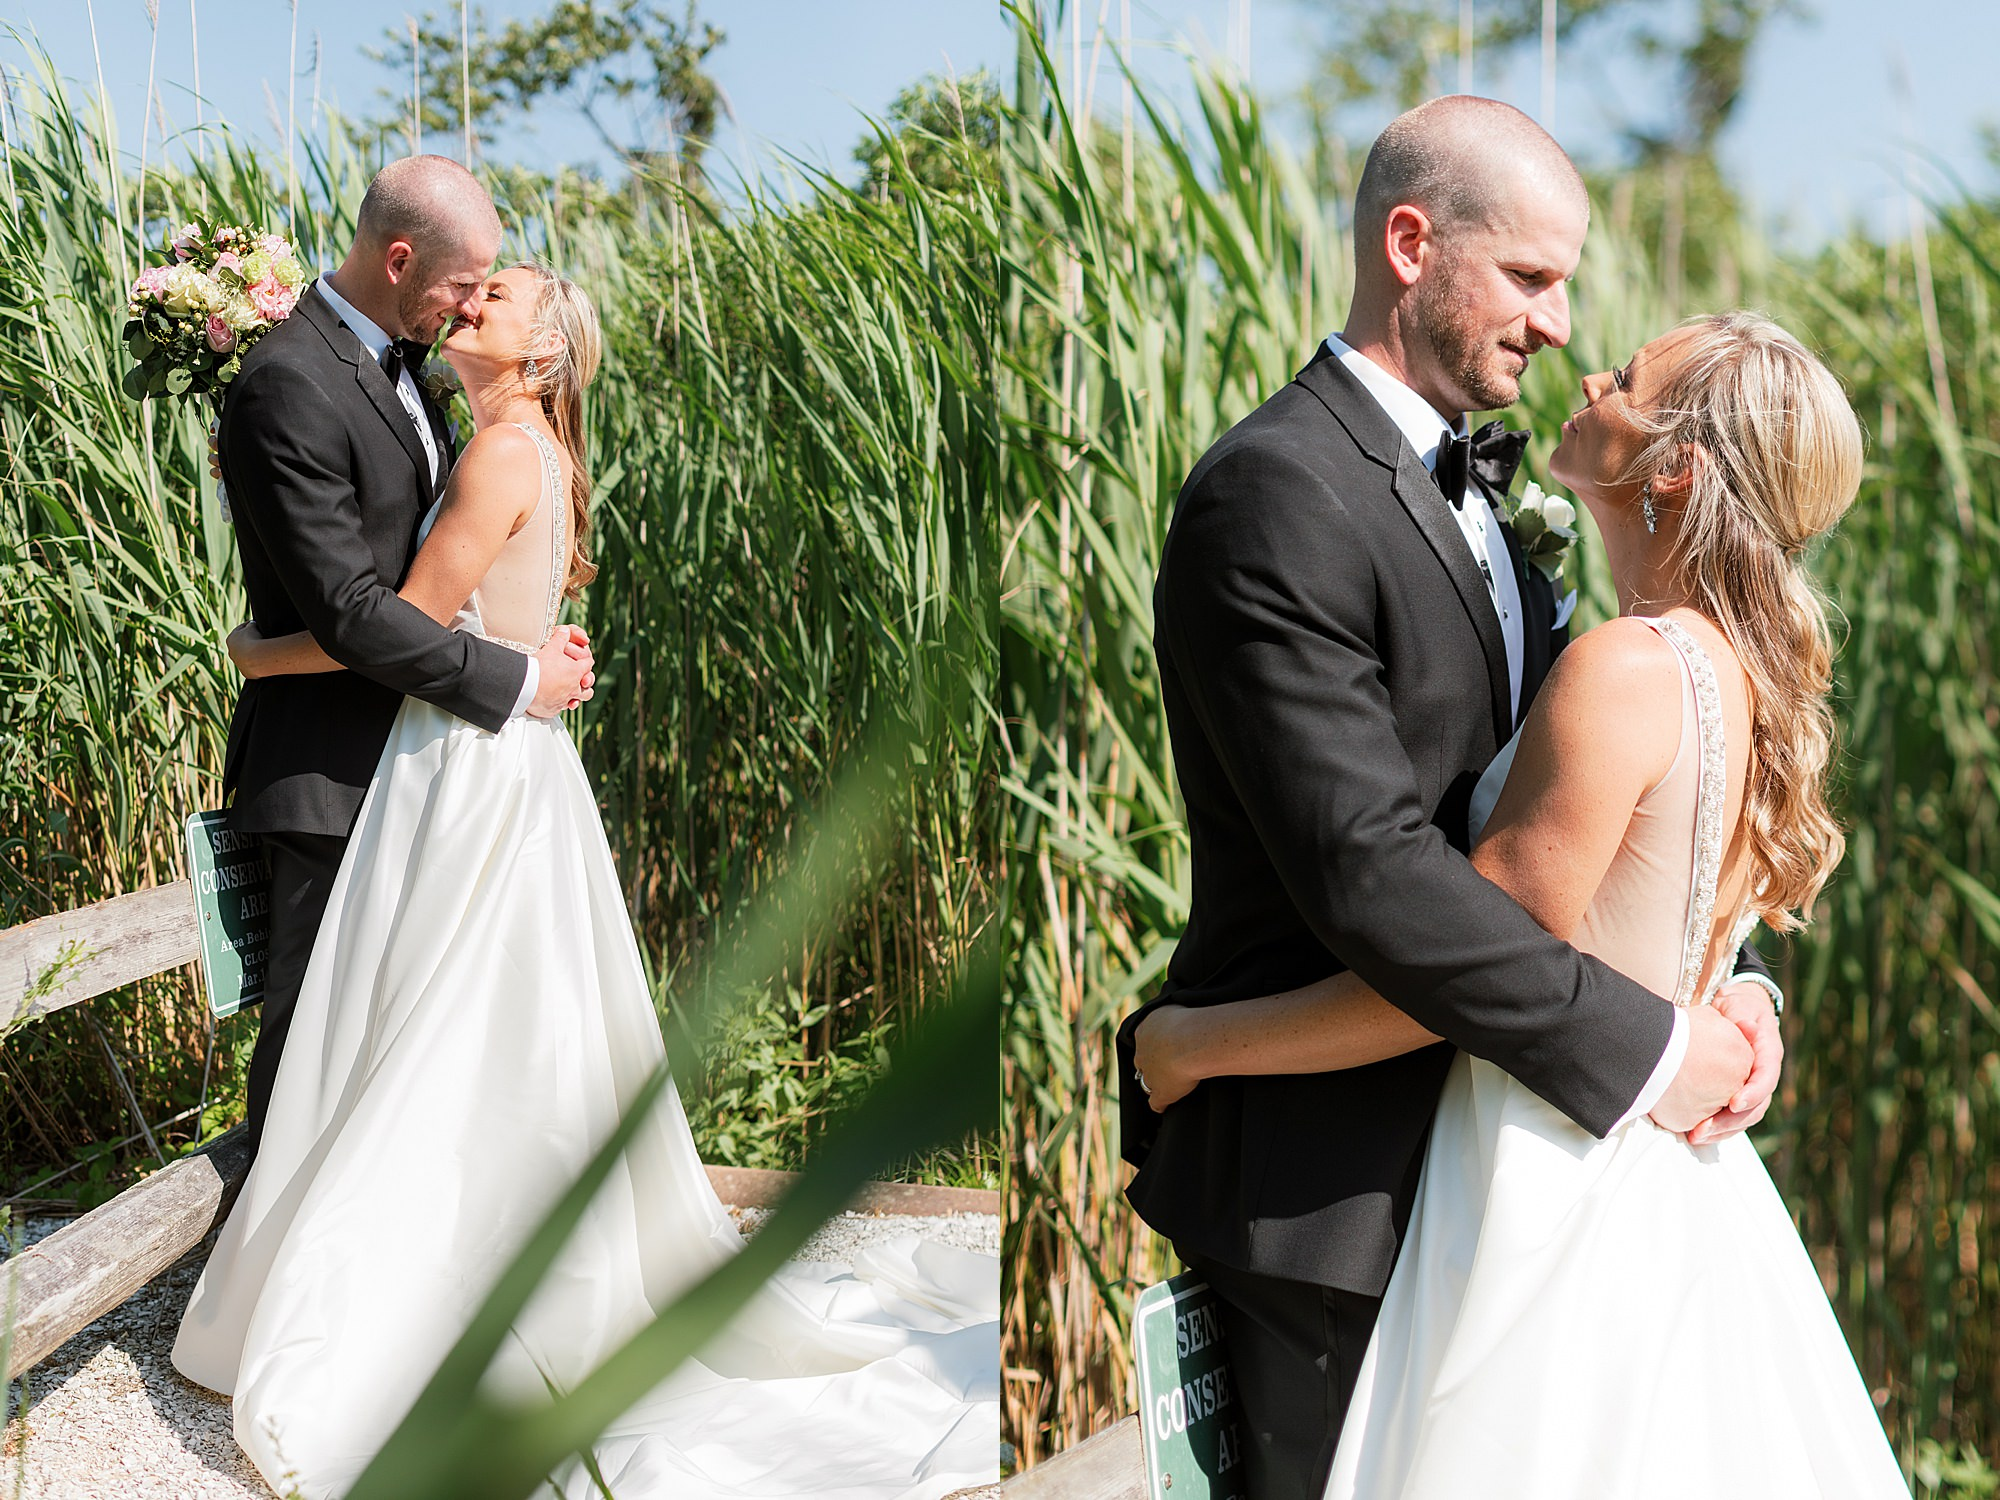 Natural and Vibrant Wedding Photography at the Reeds in Stone Harbor NJ by Magdalena Studios 0042